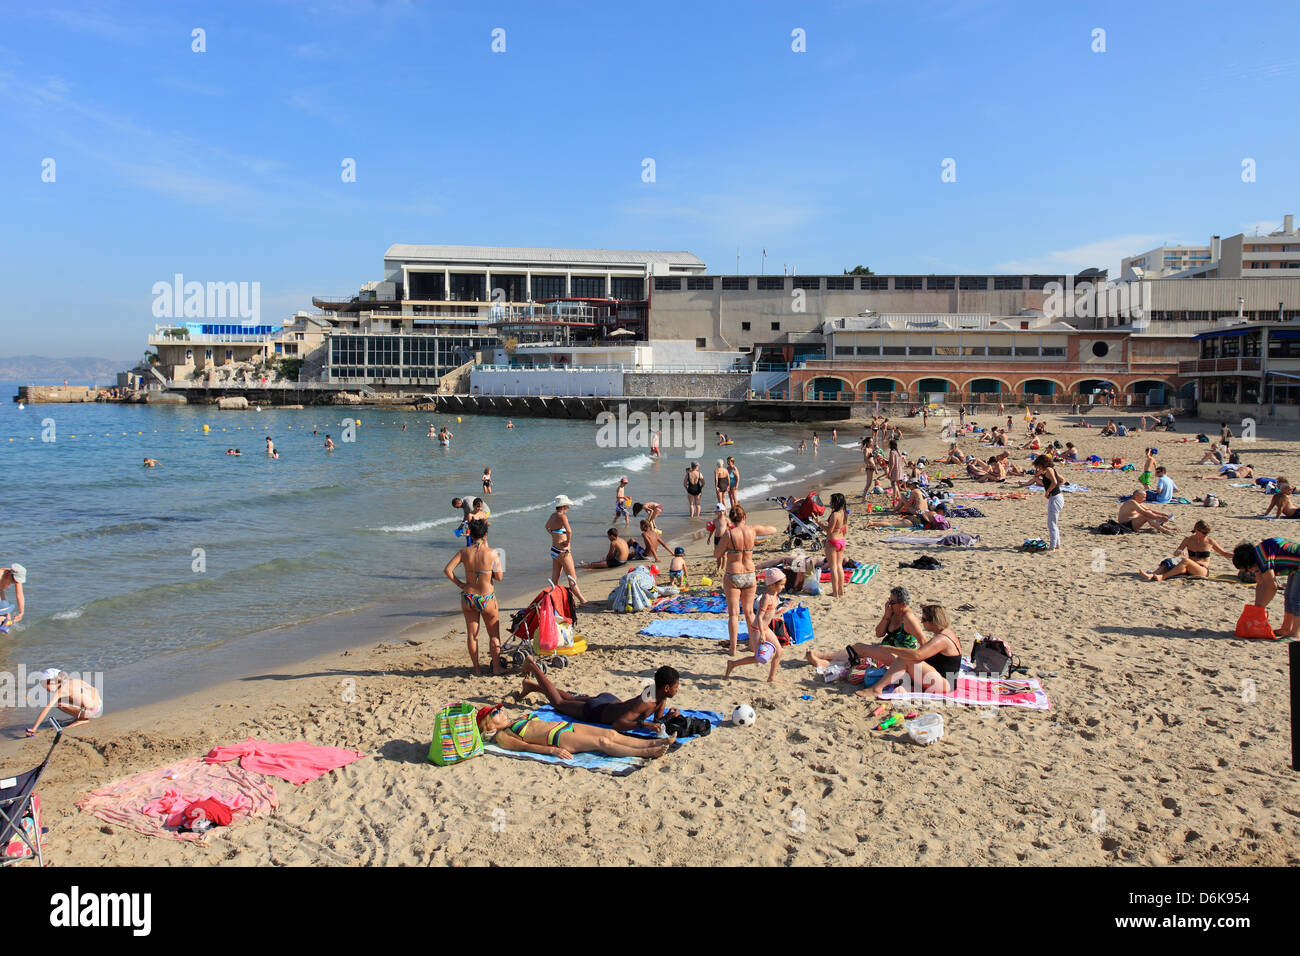 The plage des Catalans in Marseille - Stock Image